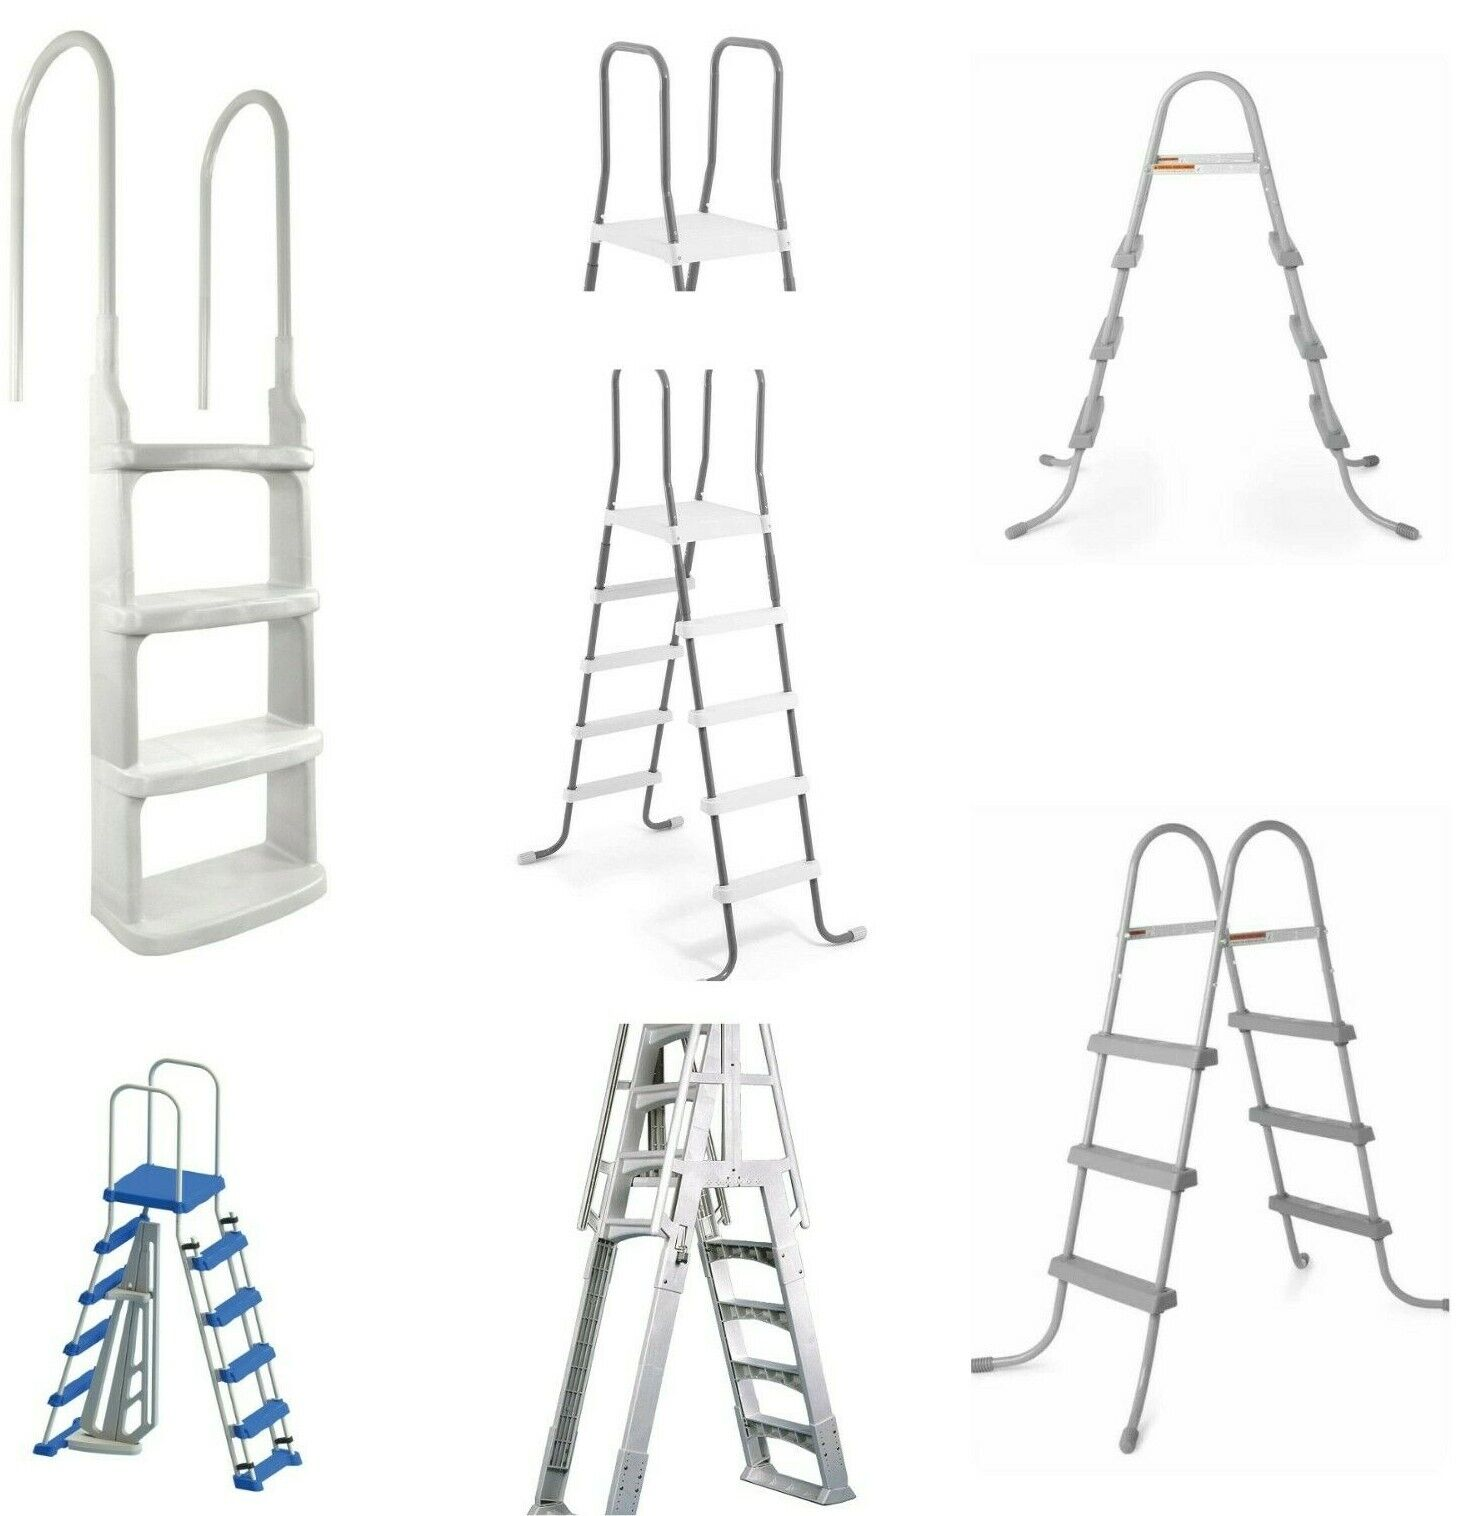 All Ladders for Above Ground Swimming Pool Ladder for Intex